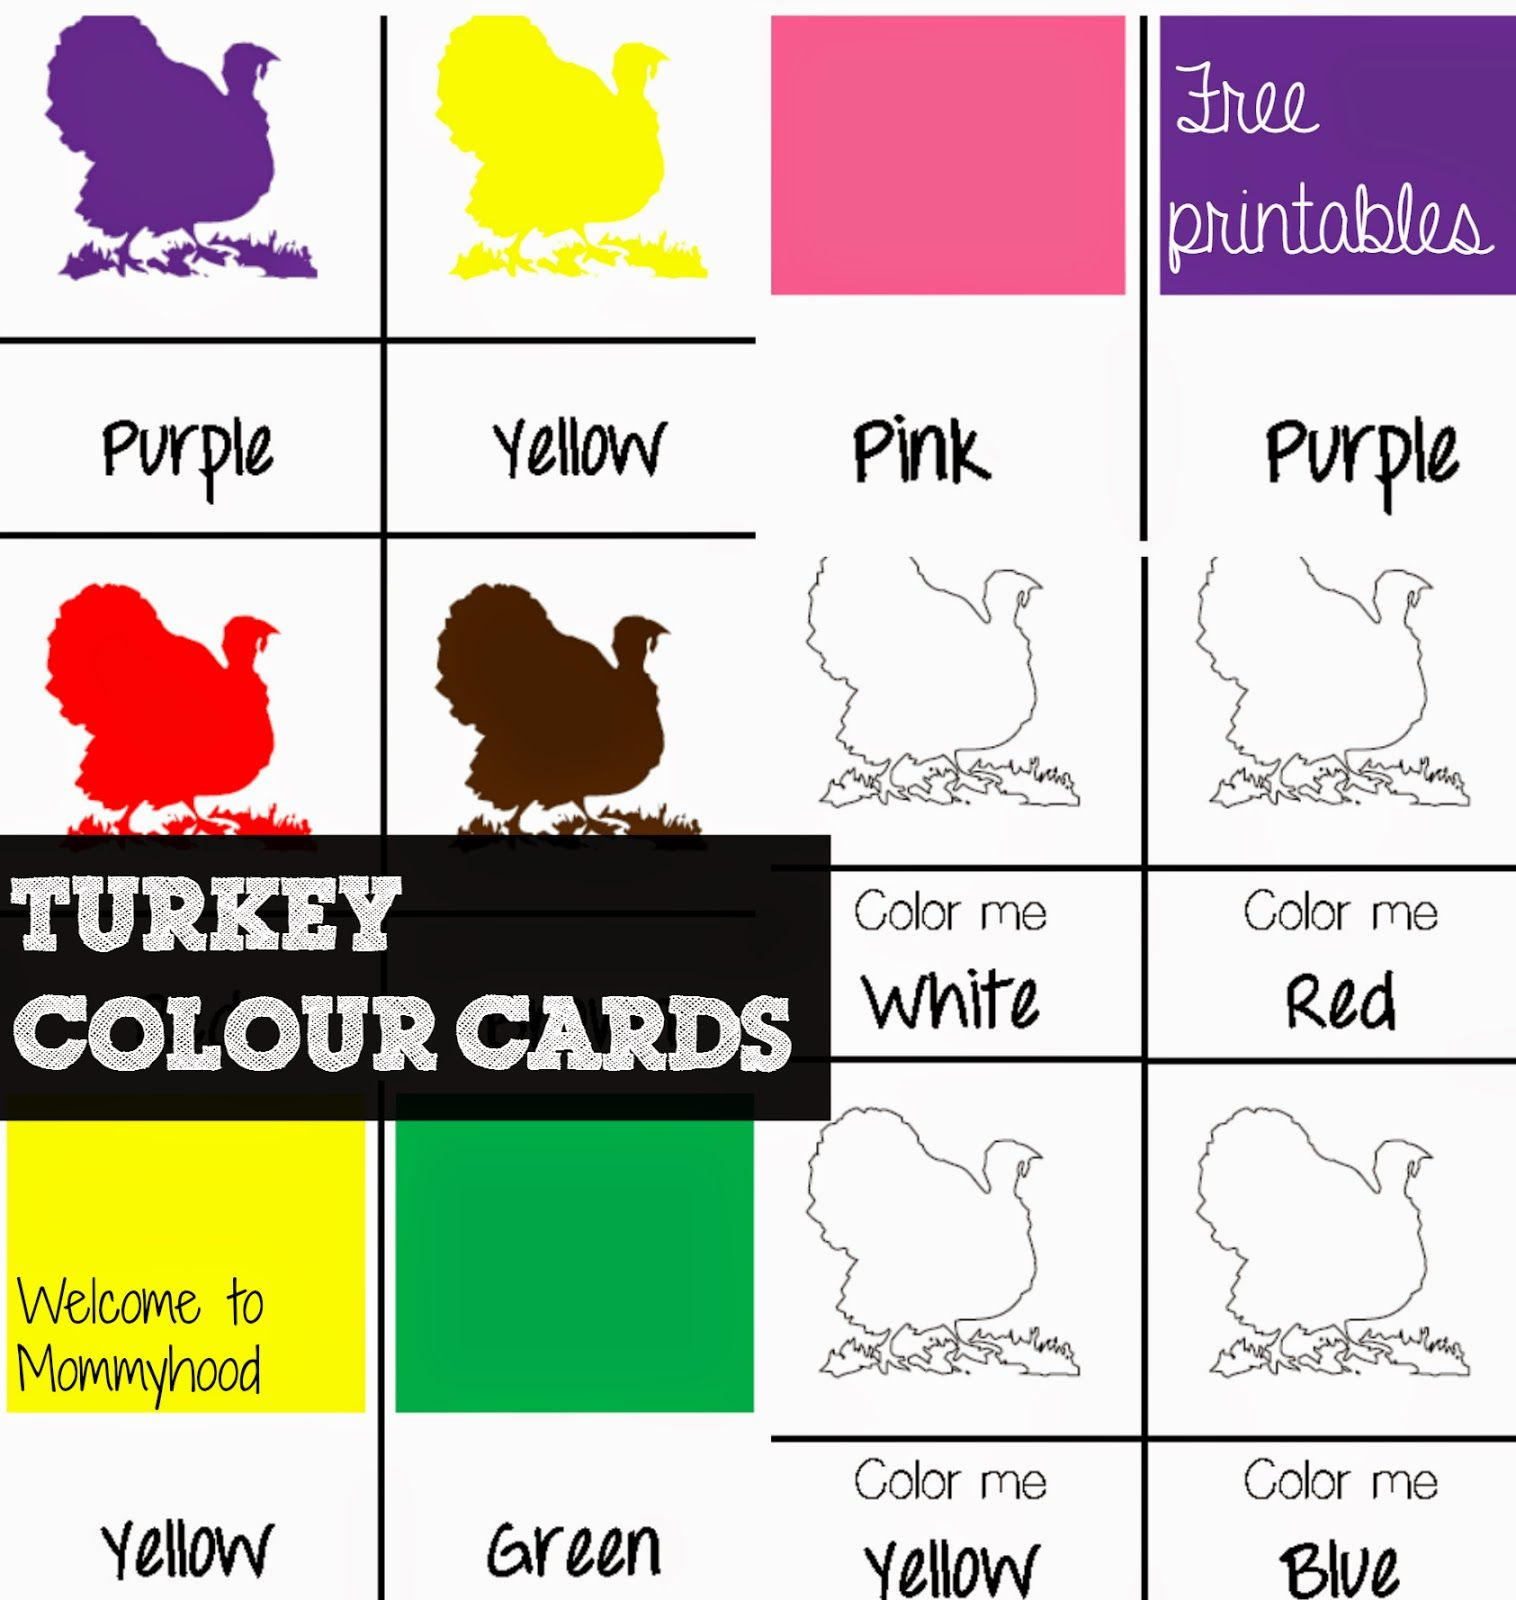 Turkey Coloring Cards And Color Activities For Toddlers